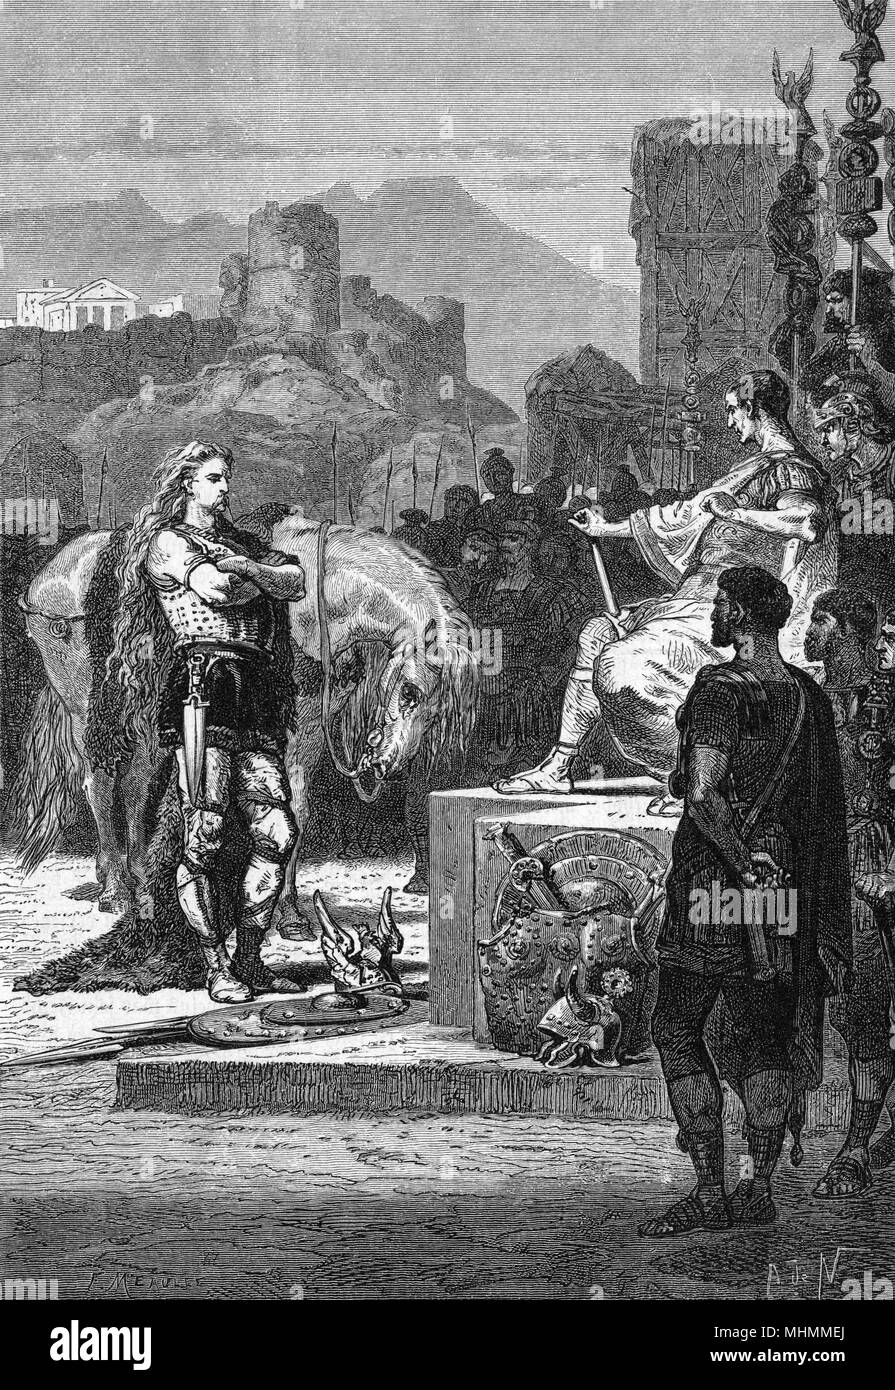 GALLIC WARS : Vercingetorix is finally defeated by Caesar ; he will be taken prisoner to Rome, where he will be executed.      Date: 52 BCE Stock Photo